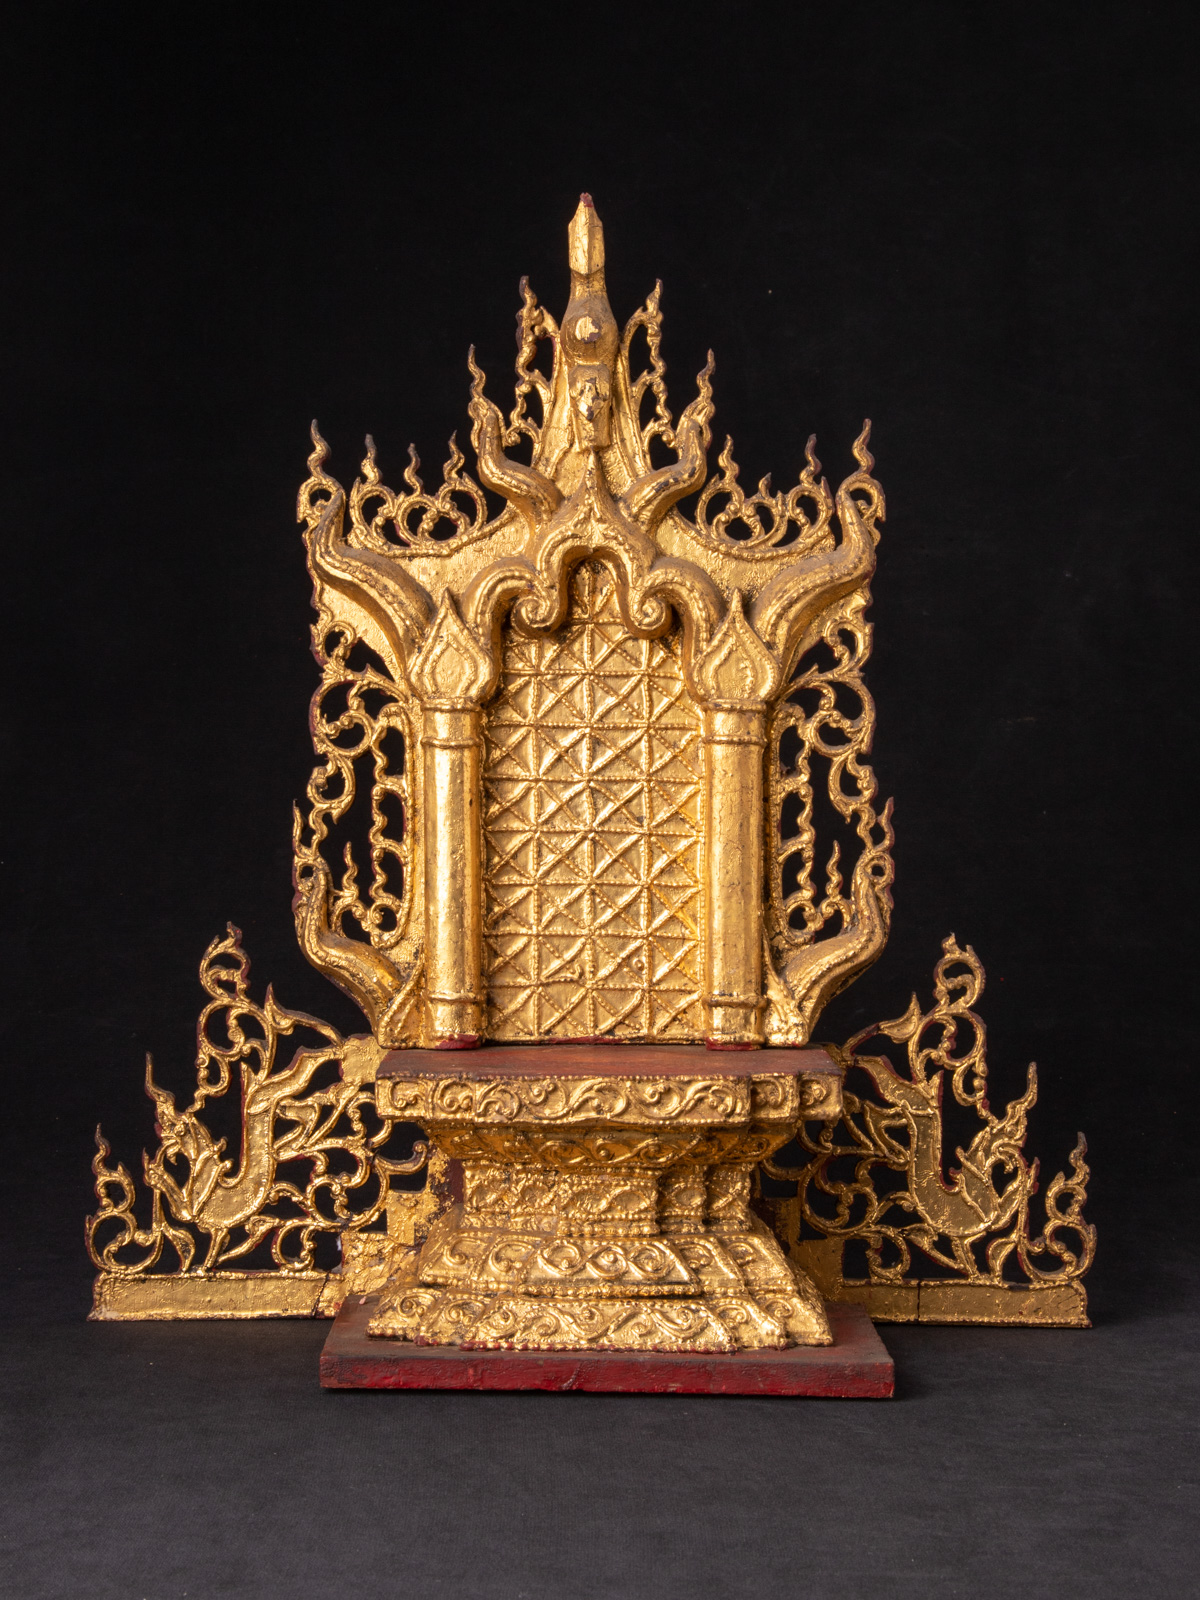 Antique Burmese Throne from Burma made from Bronze